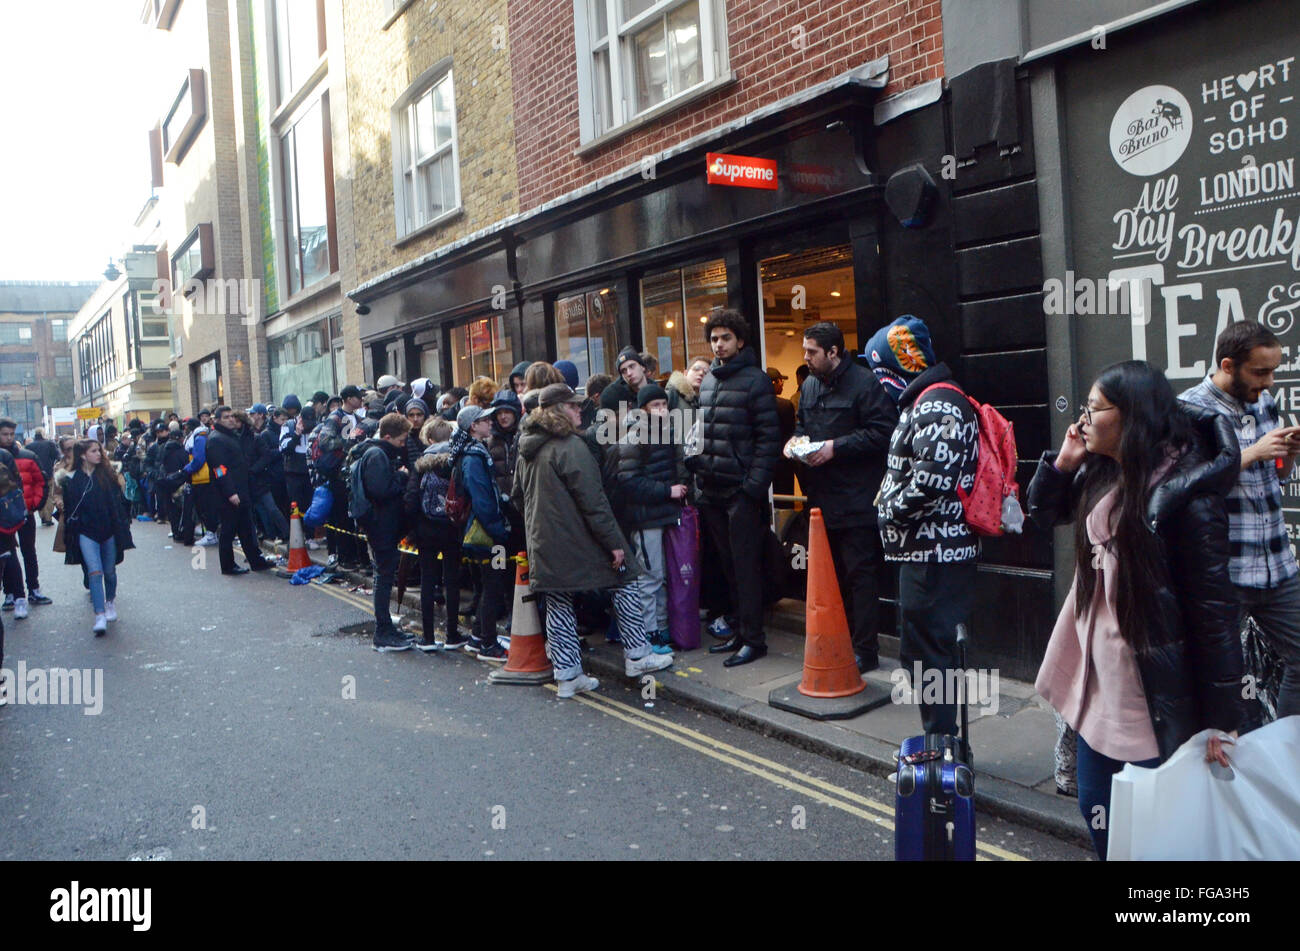 Supreme Store Stock Photos   Supreme Store Stock Images - Alamy 000d8b137f